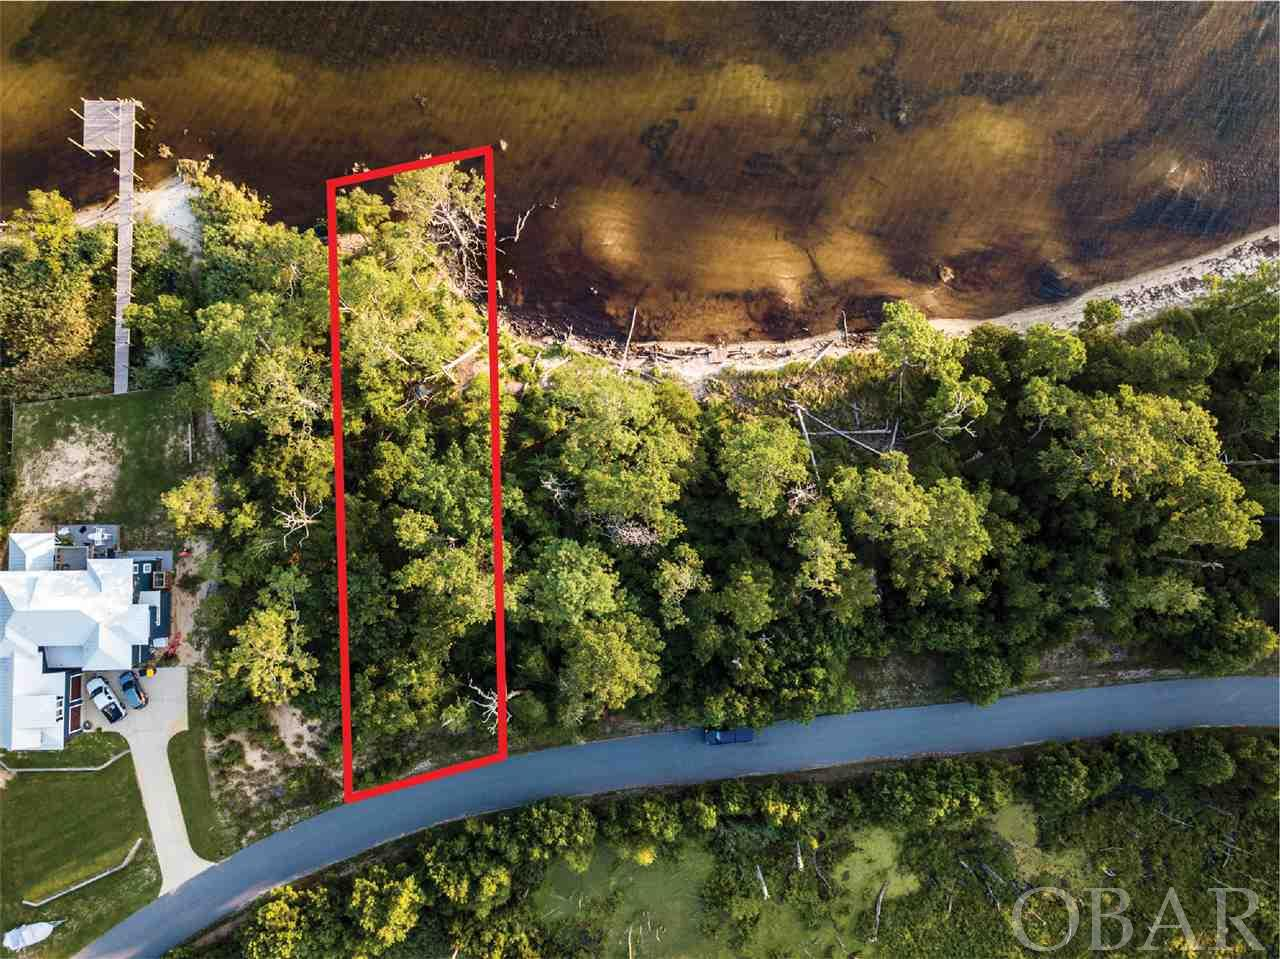 236 Tower Lane, Kill Devil Hills, NC 27948, ,Lots/land,For sale,Tower Lane,101477